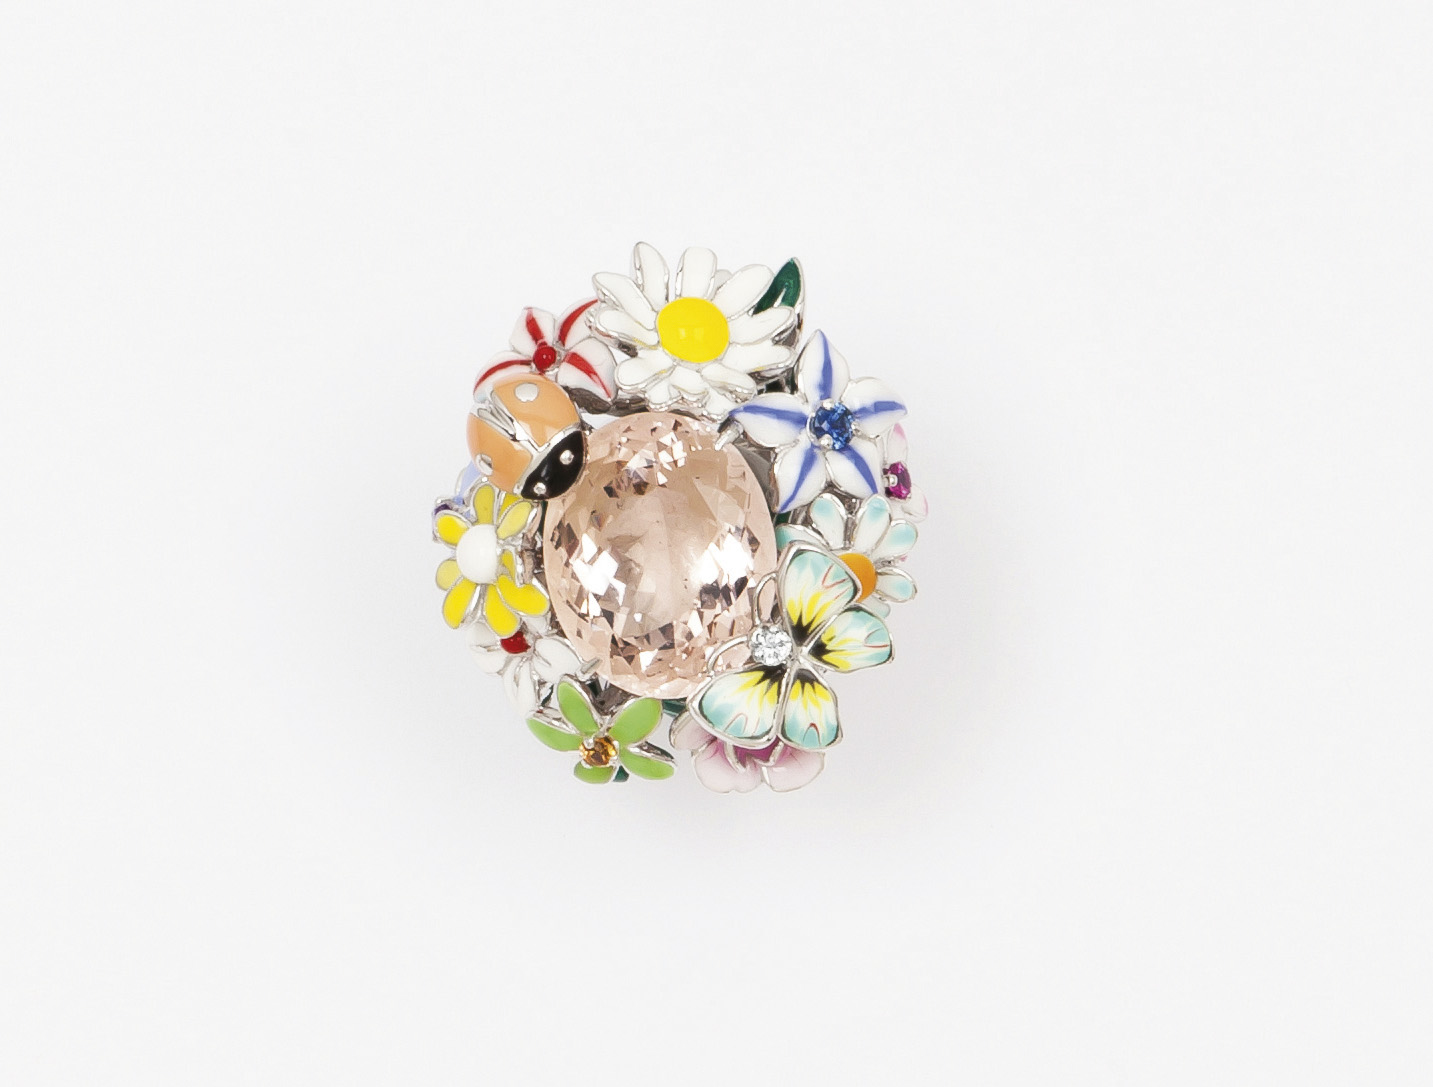 €5,376Victoire de Castellane (b. 1962) for Dior, Diorette ring, Milly-la-Forêt collection, in white gold with polychrome enamel flowers, l